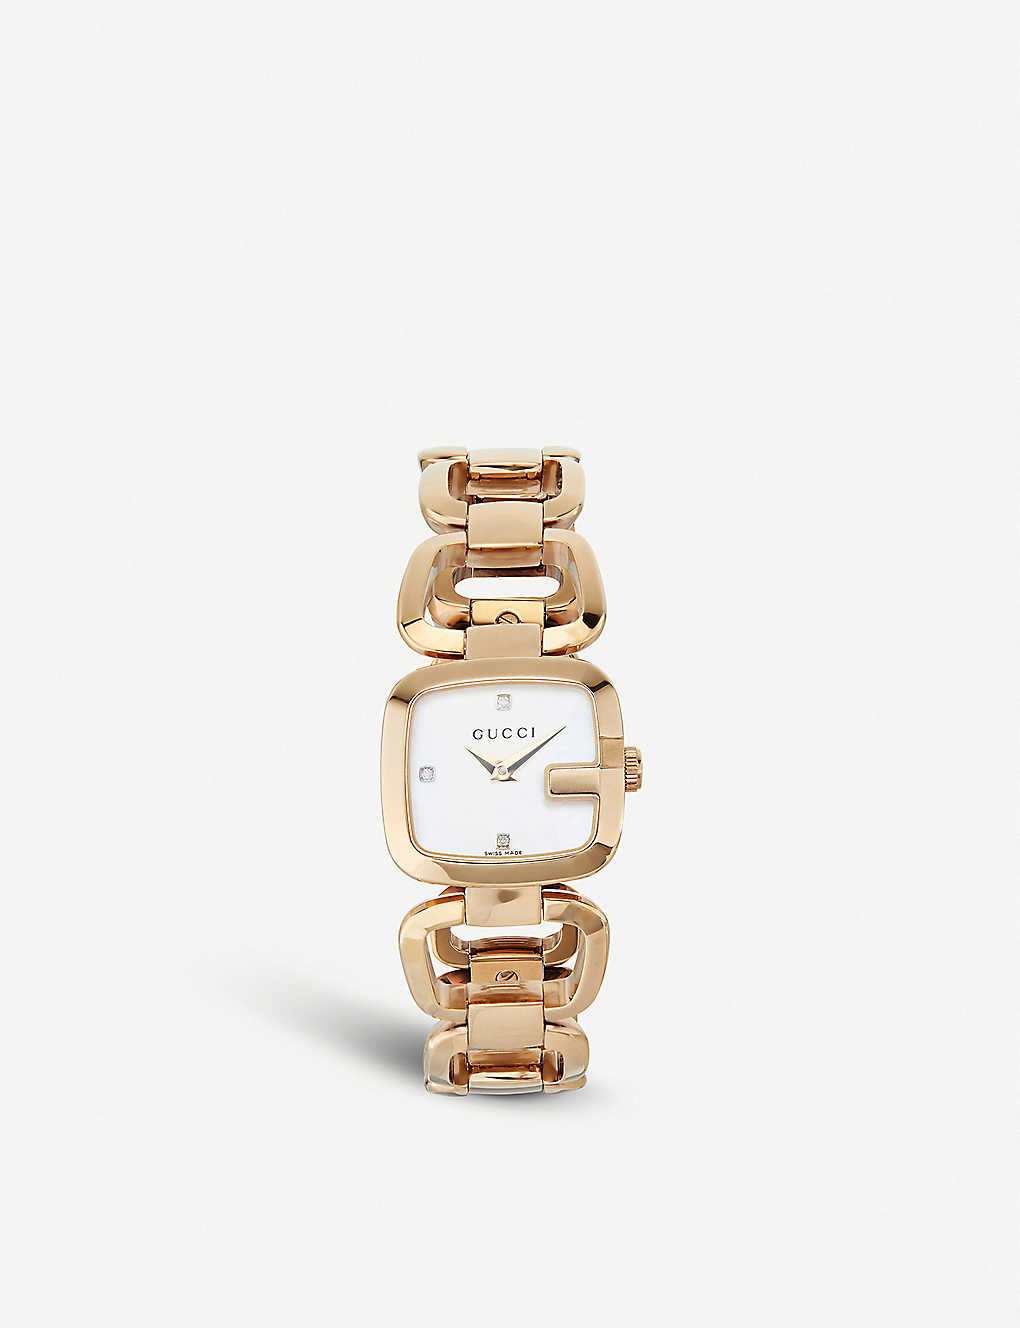 8928adfa530 GUCCI - YA125513 G-Gucci Collection yellow-gold PVD watch ...